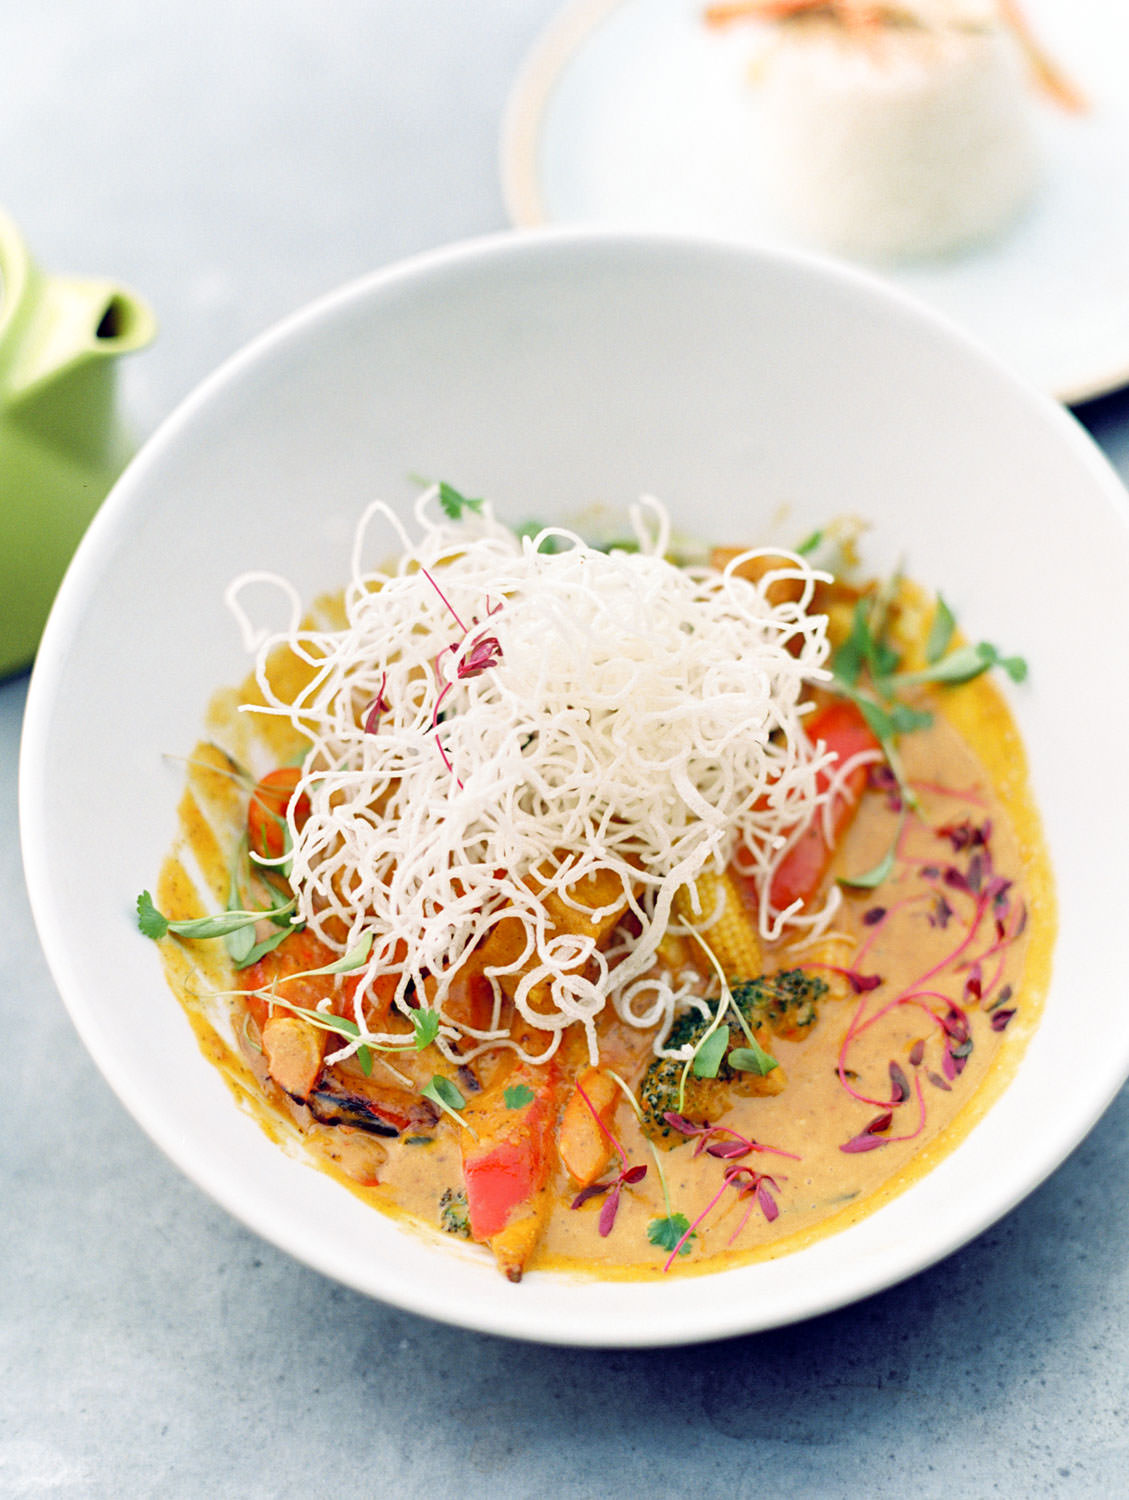 Vietnamese Coconut Curry Bowl Served with fresh vegetables, tofu, jasmine rice and pickled vegetable salad. Garnished with holy basil and crispy noodles from The Green Rocket in Bath England, Cavin Elizabeth Photography